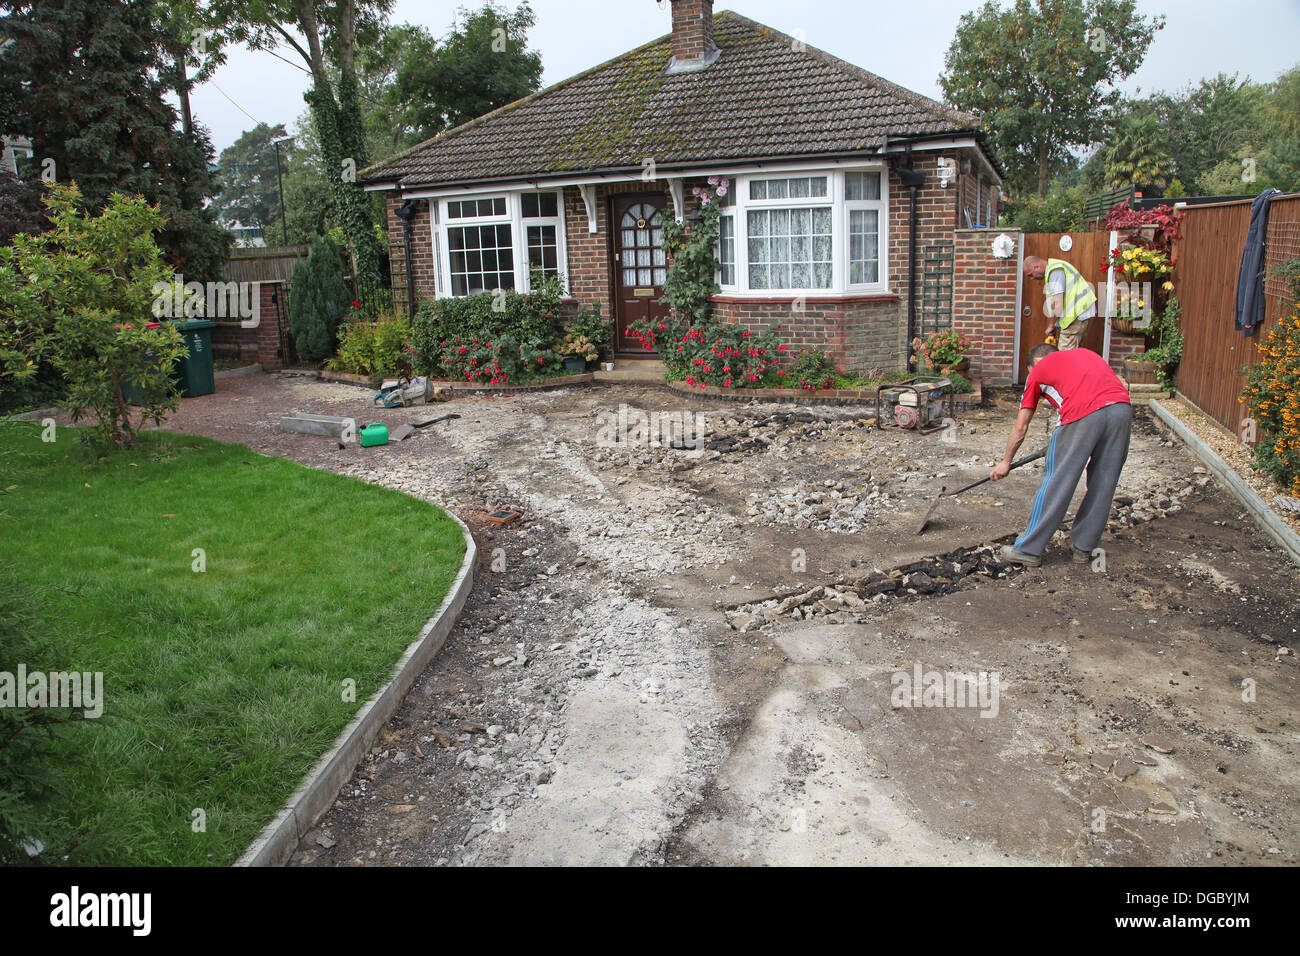 Stage 1 of a project to build a block paved drive.Preparing base. - Stock Image